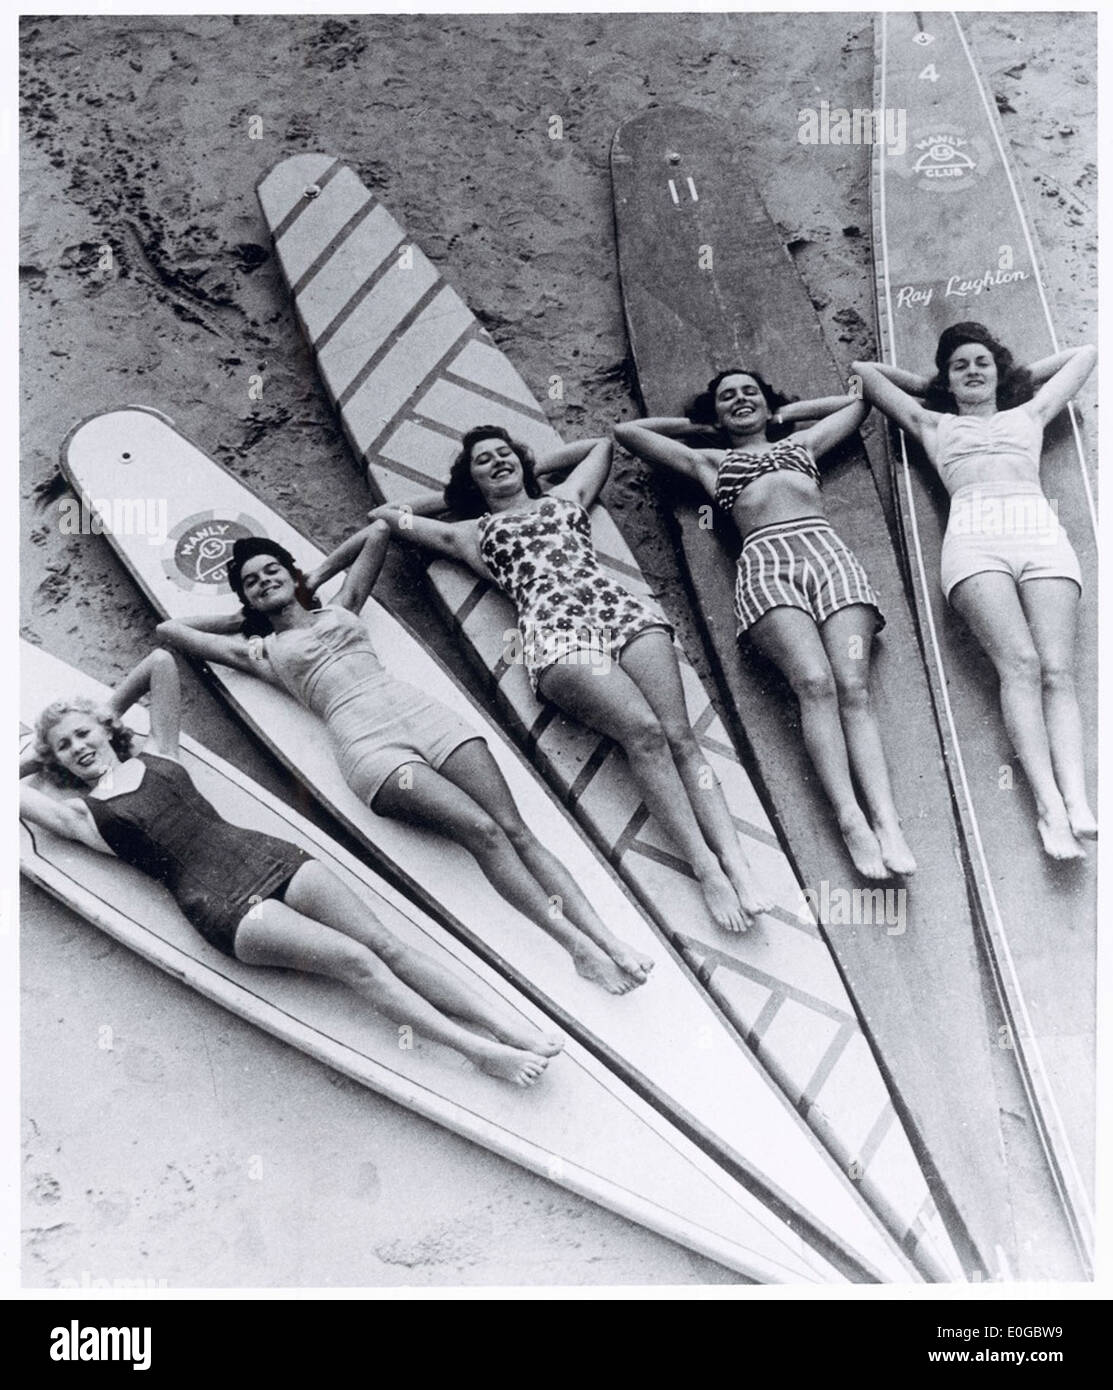 Surfen Sie Sirenen, Manly Beach, New South Wales, 1938-46 Stockbild